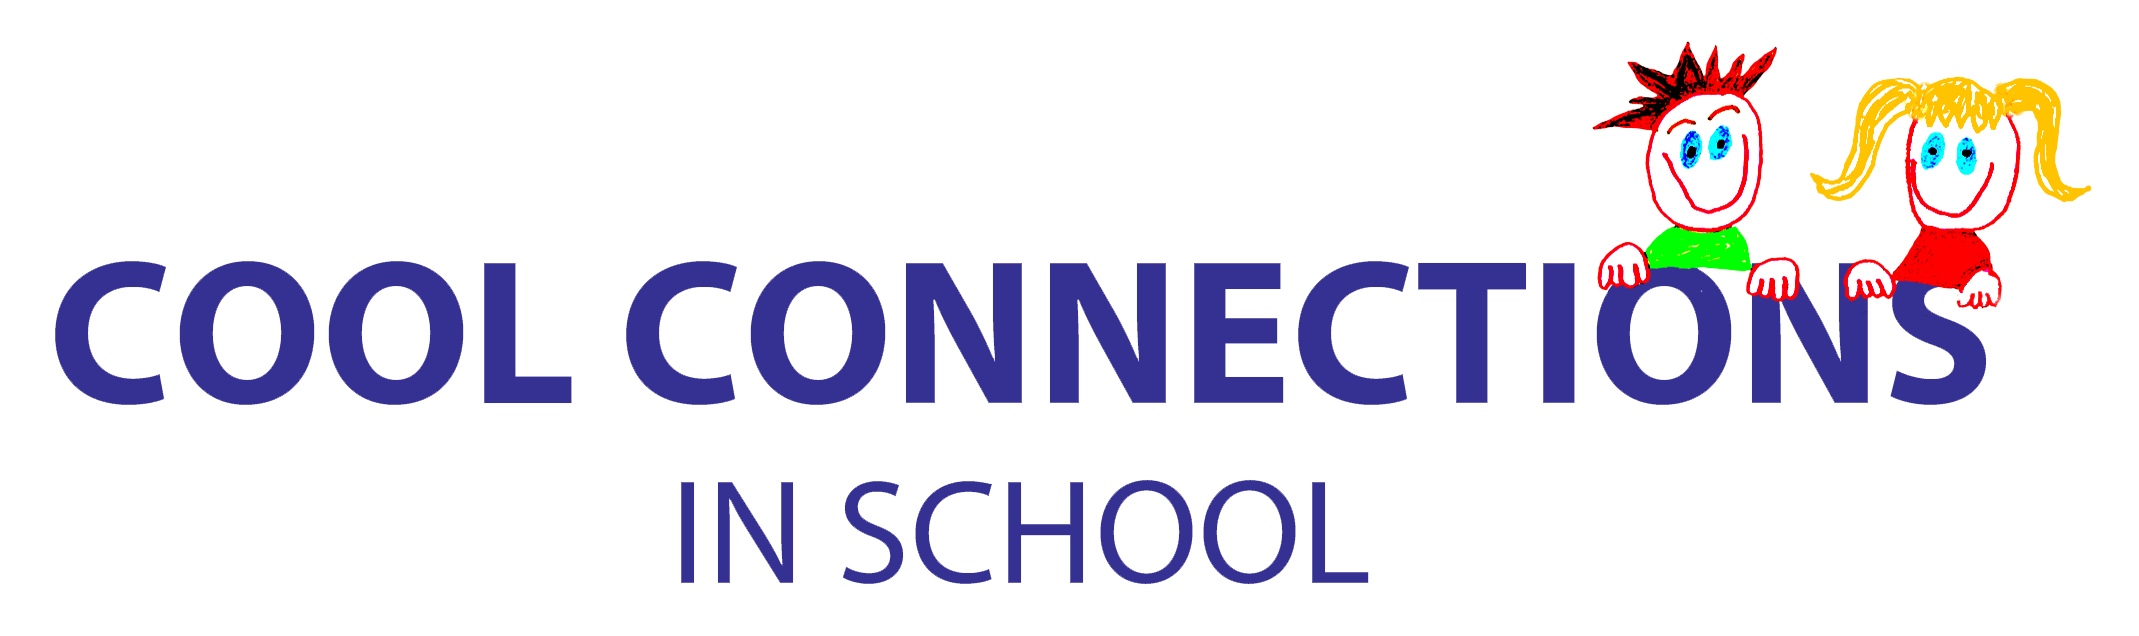 Cool Connections in School logo